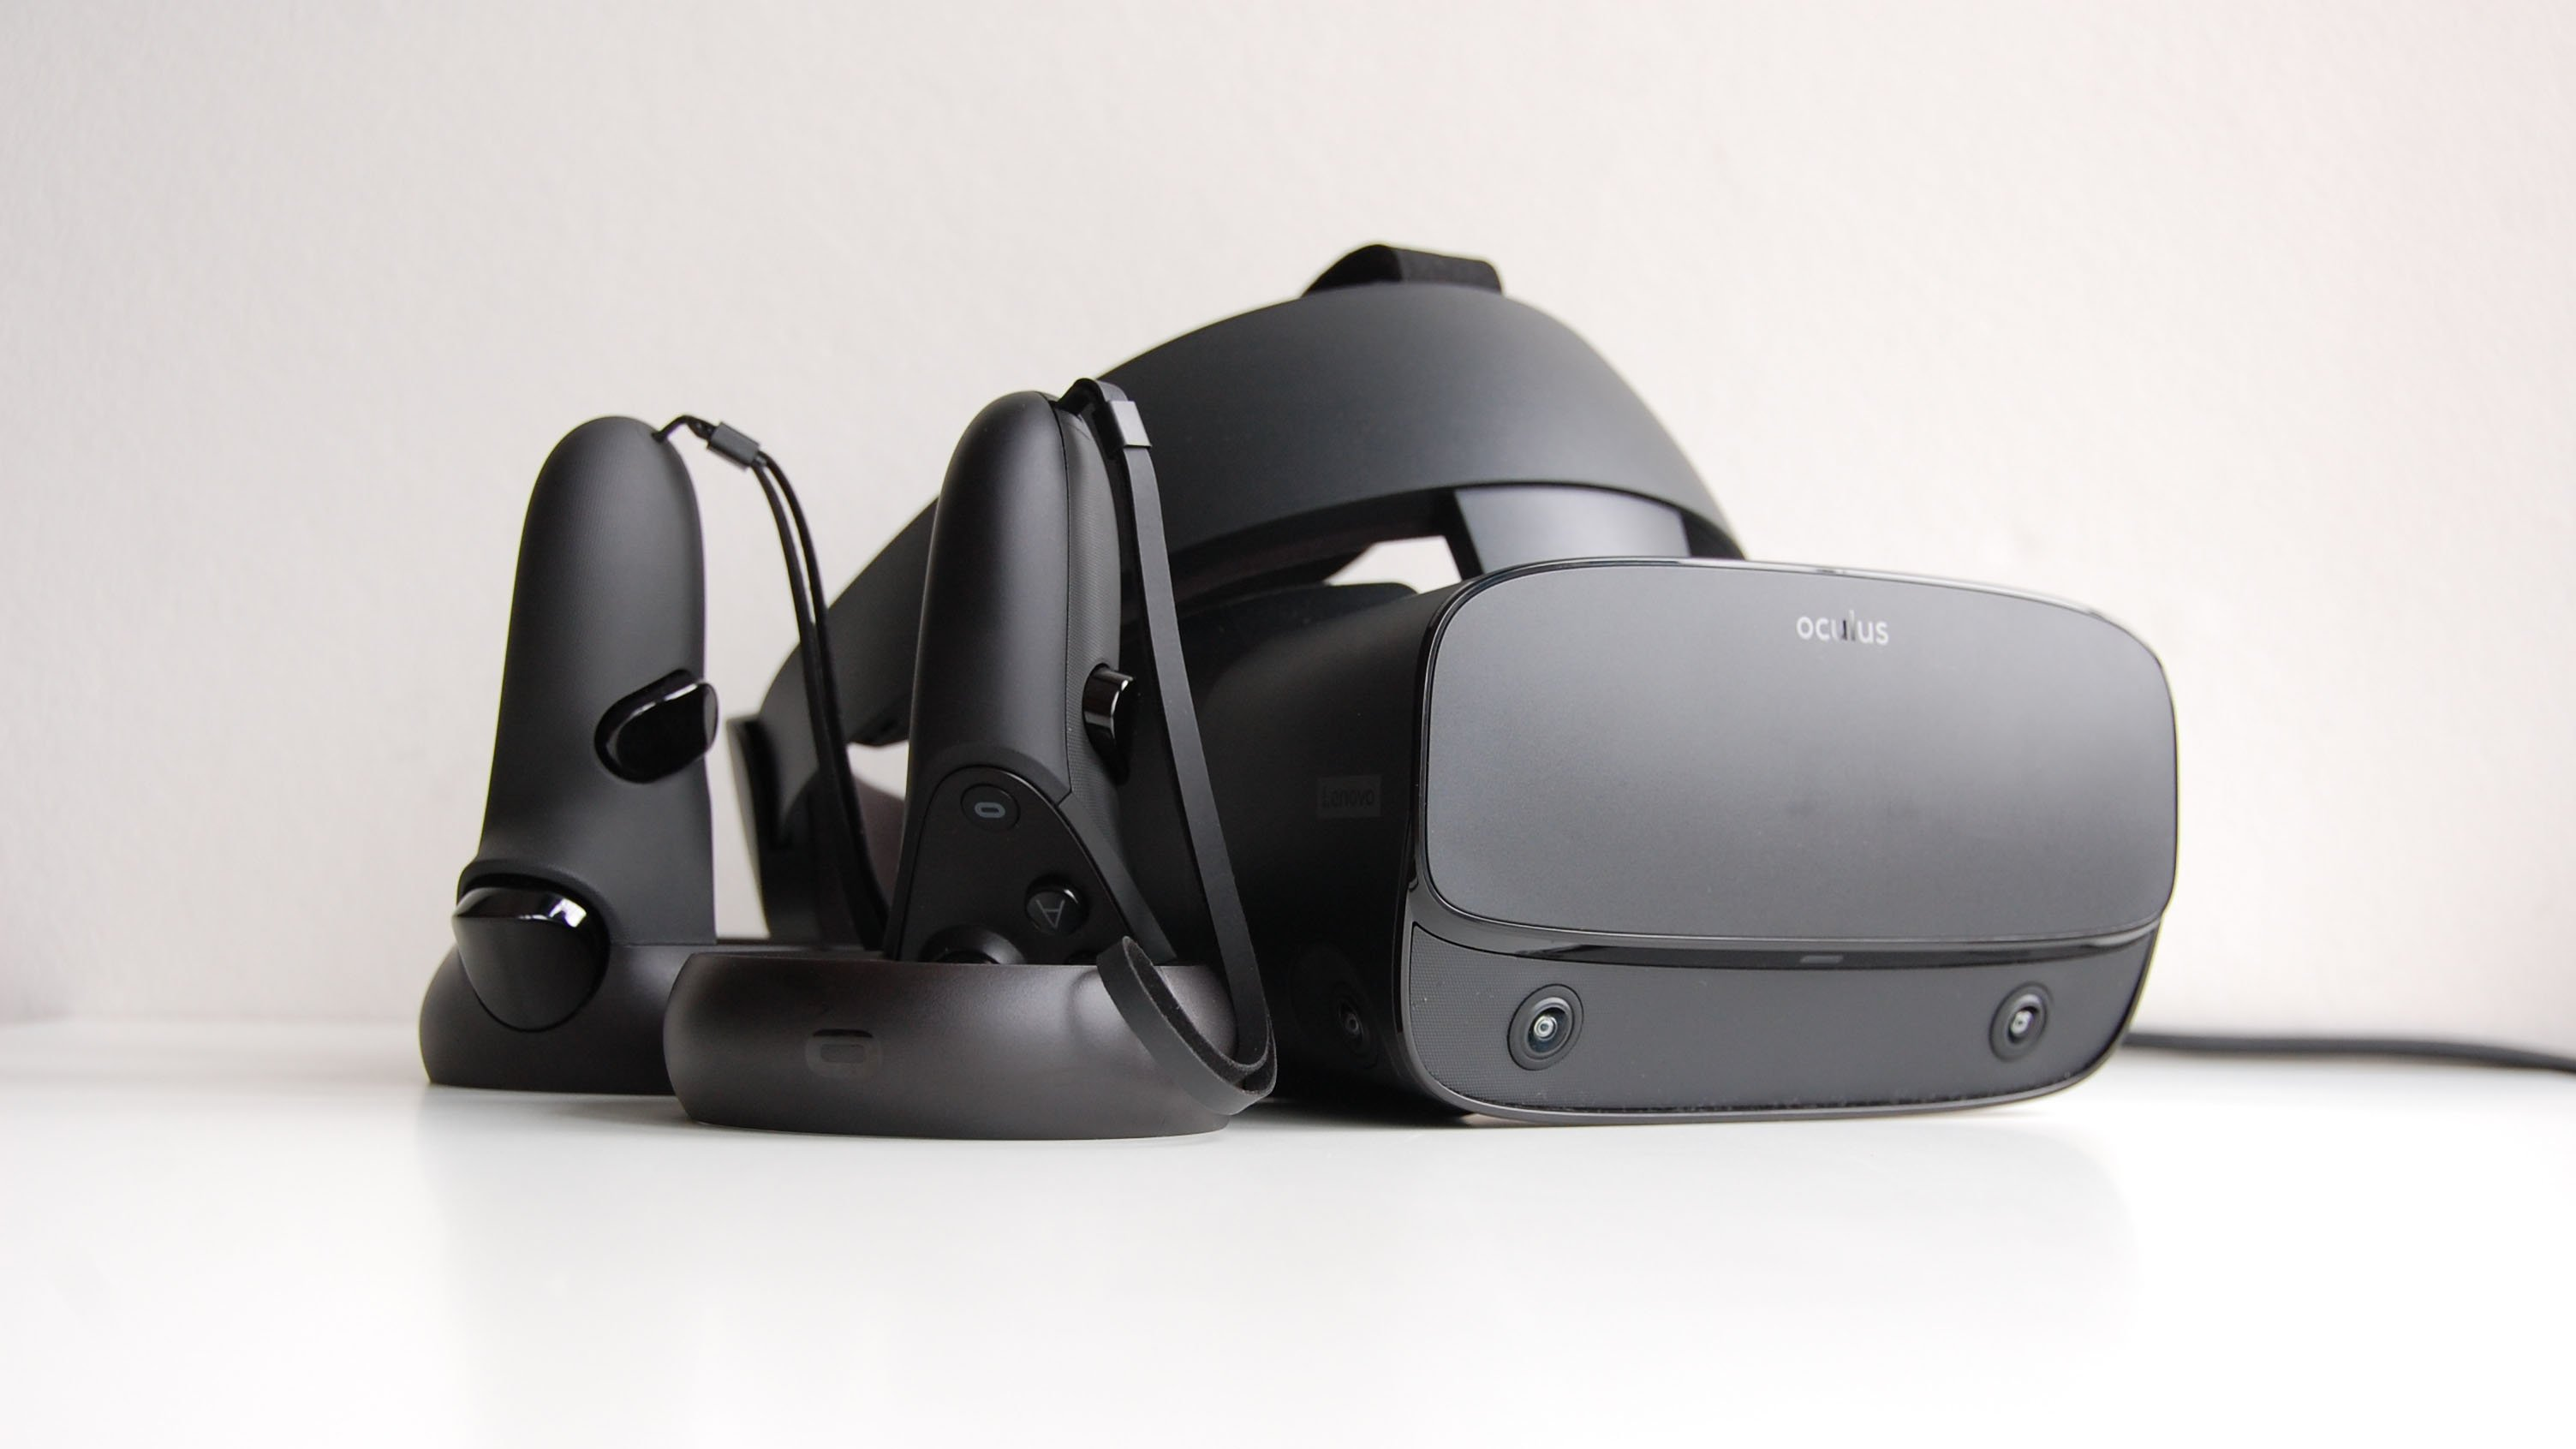 Best VR headset 2019: The most immersive PC, PS4 and mobile virtual